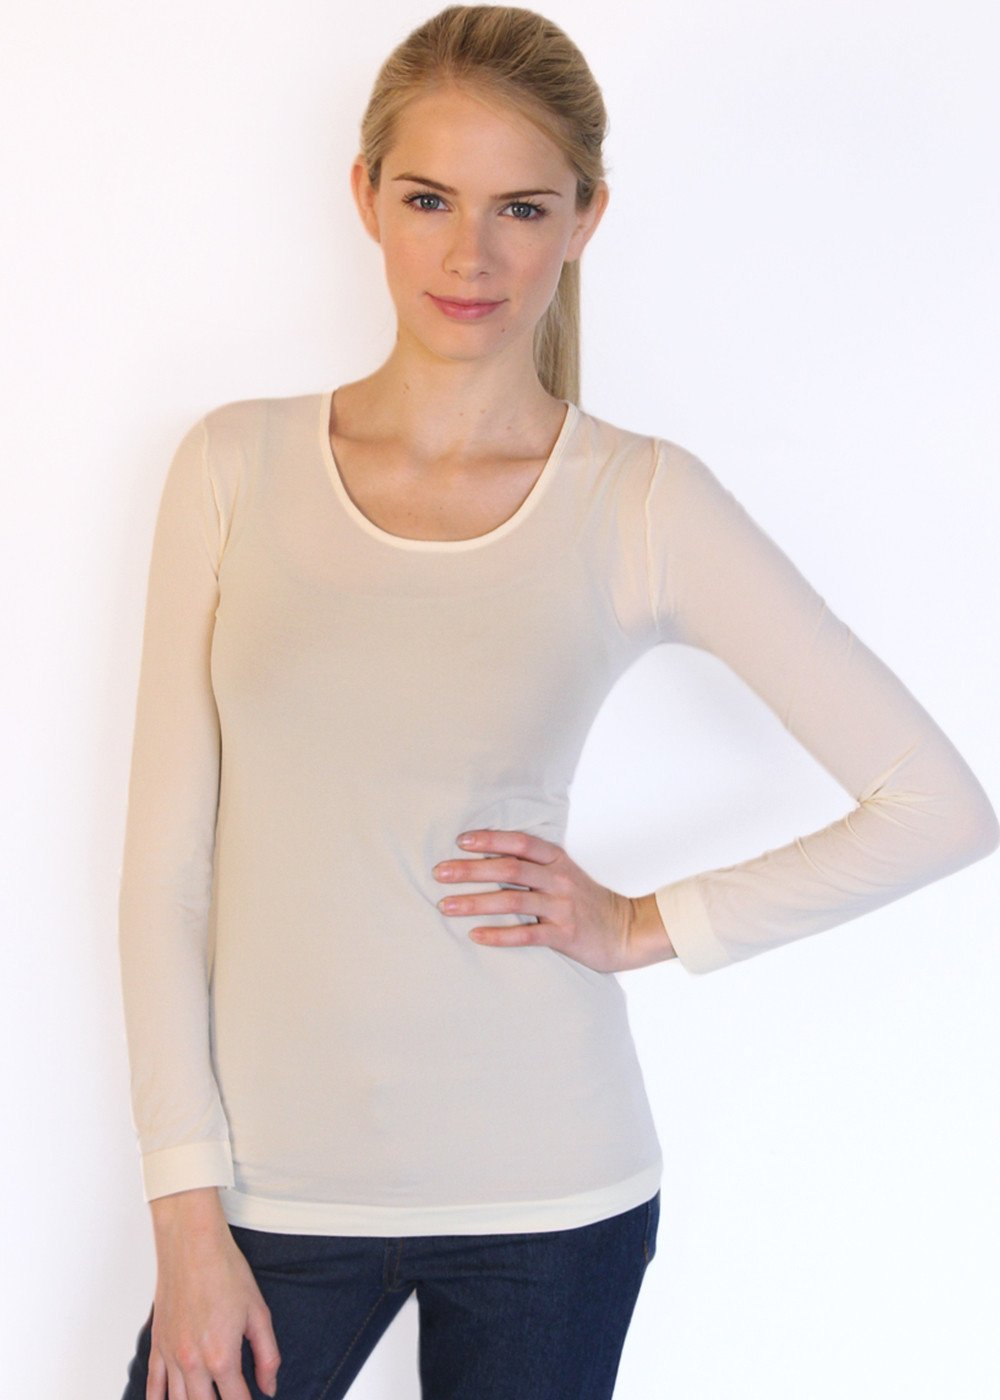 Solid Crew Neck Second Skin Top - NEW COLORS!